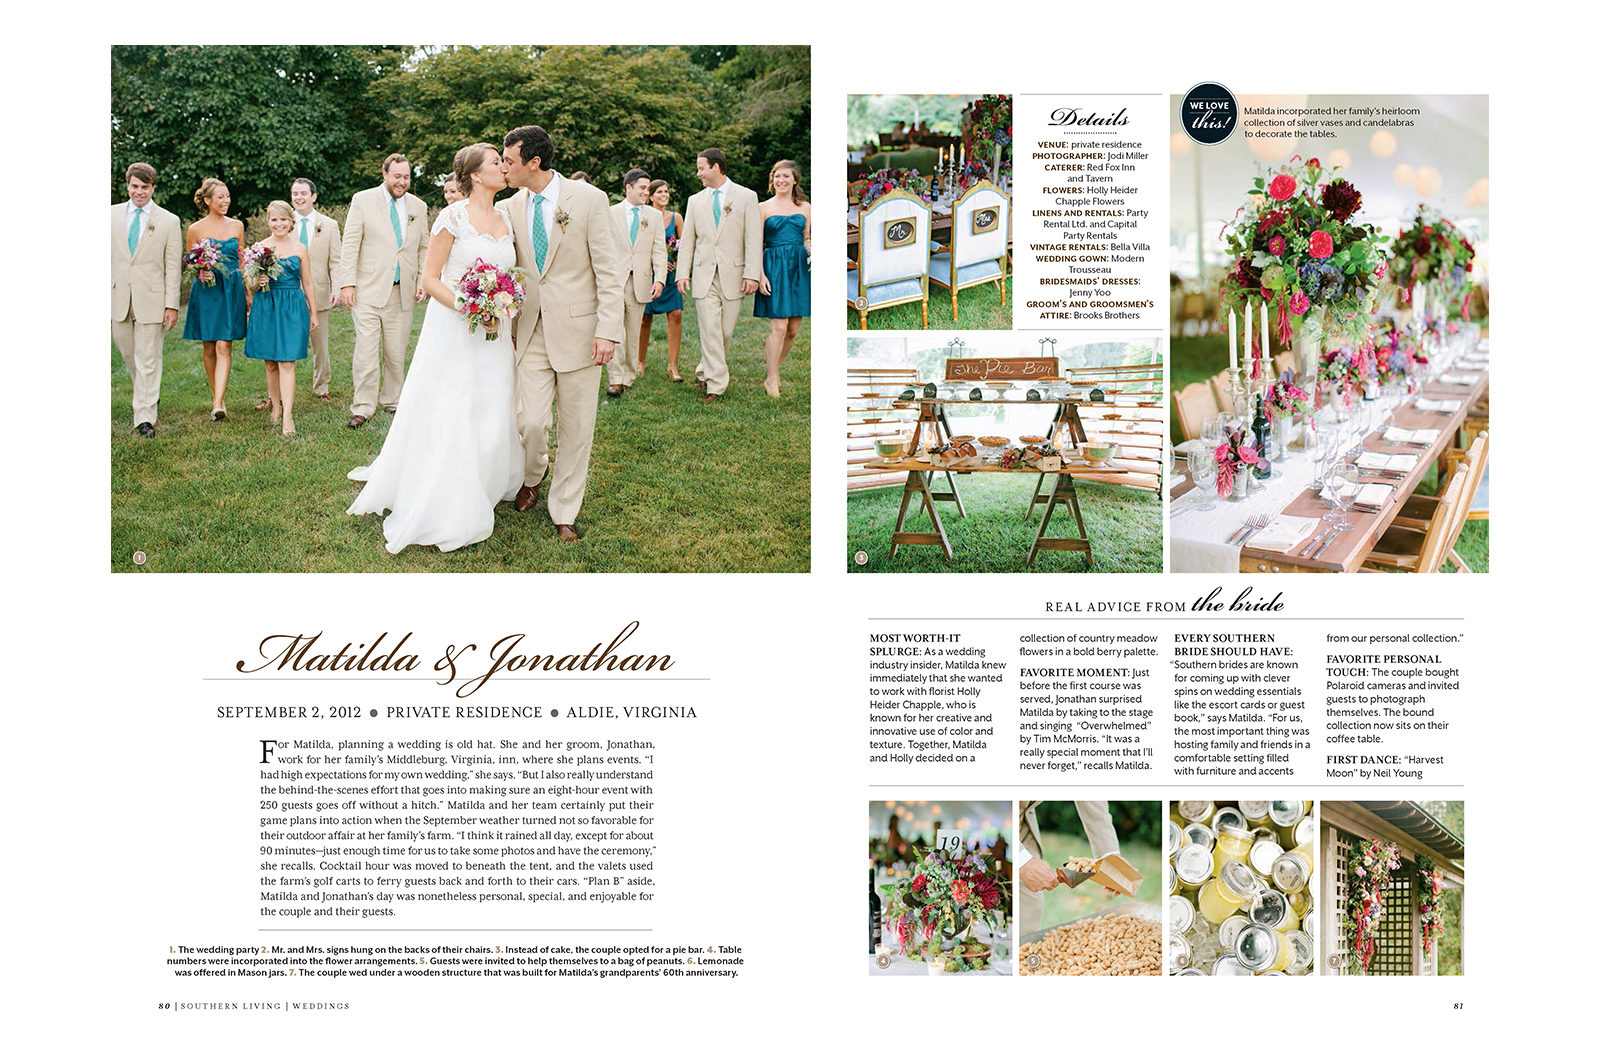 37-Southern-Living-Wedding-2012